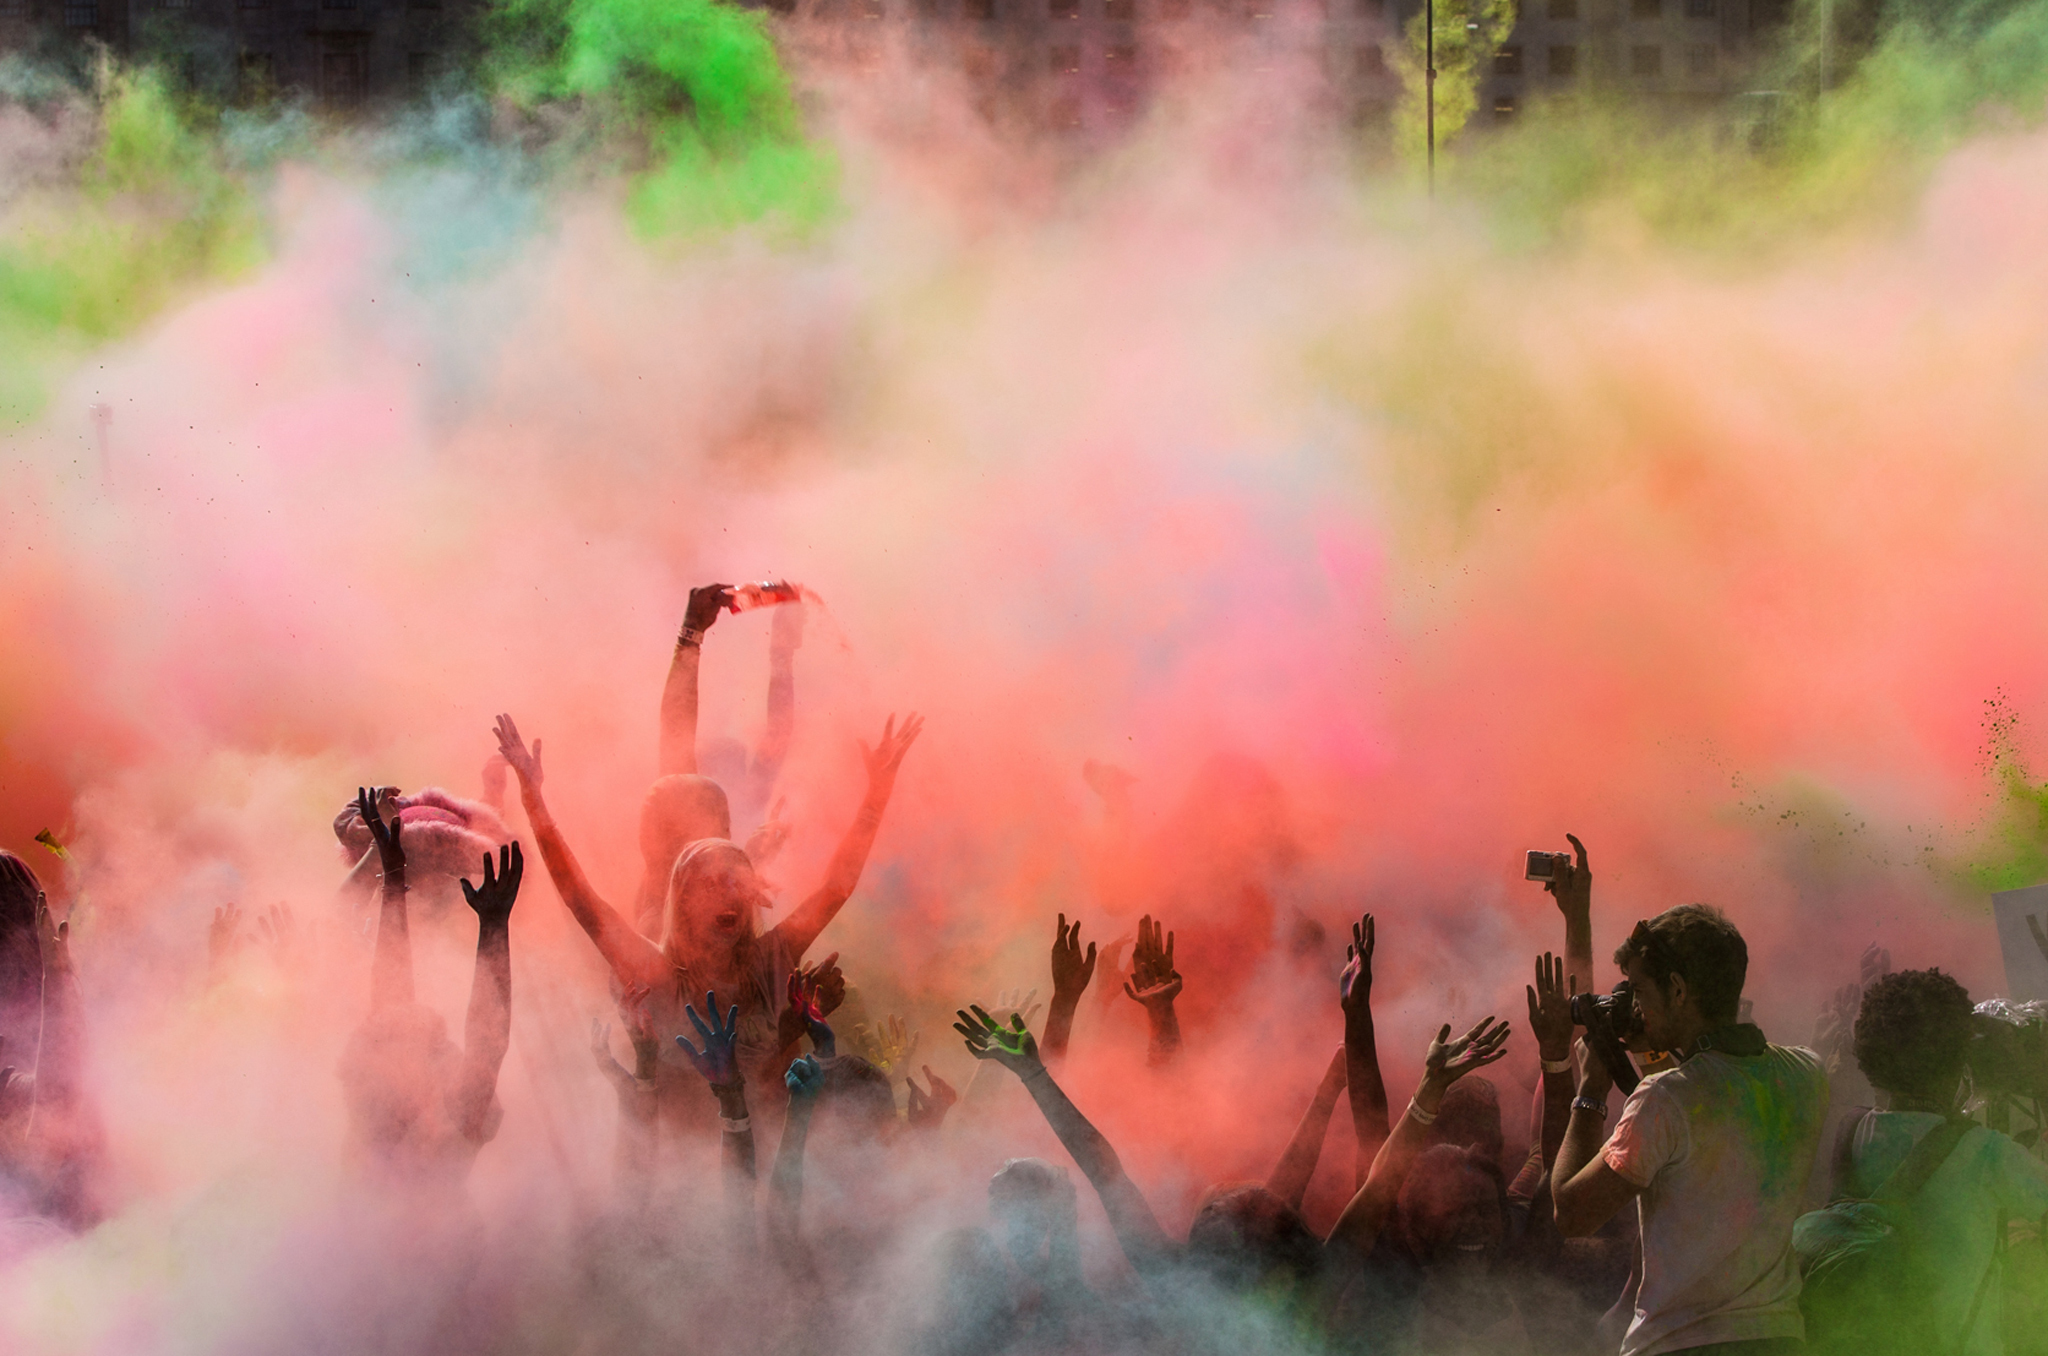 Holi festival events